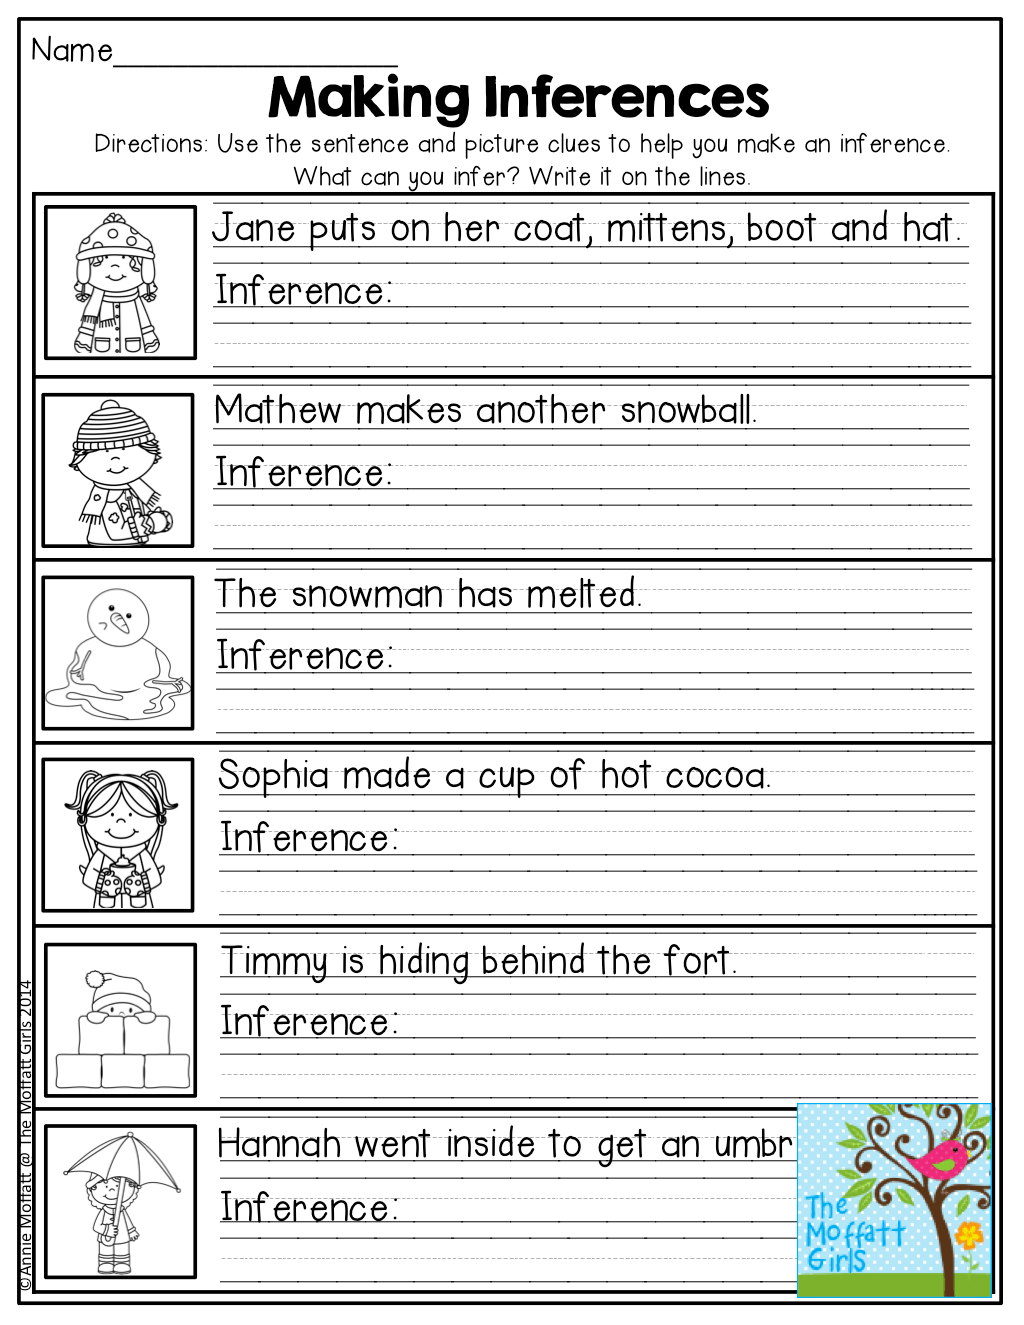 Inferencing Worksheets 4th Grade